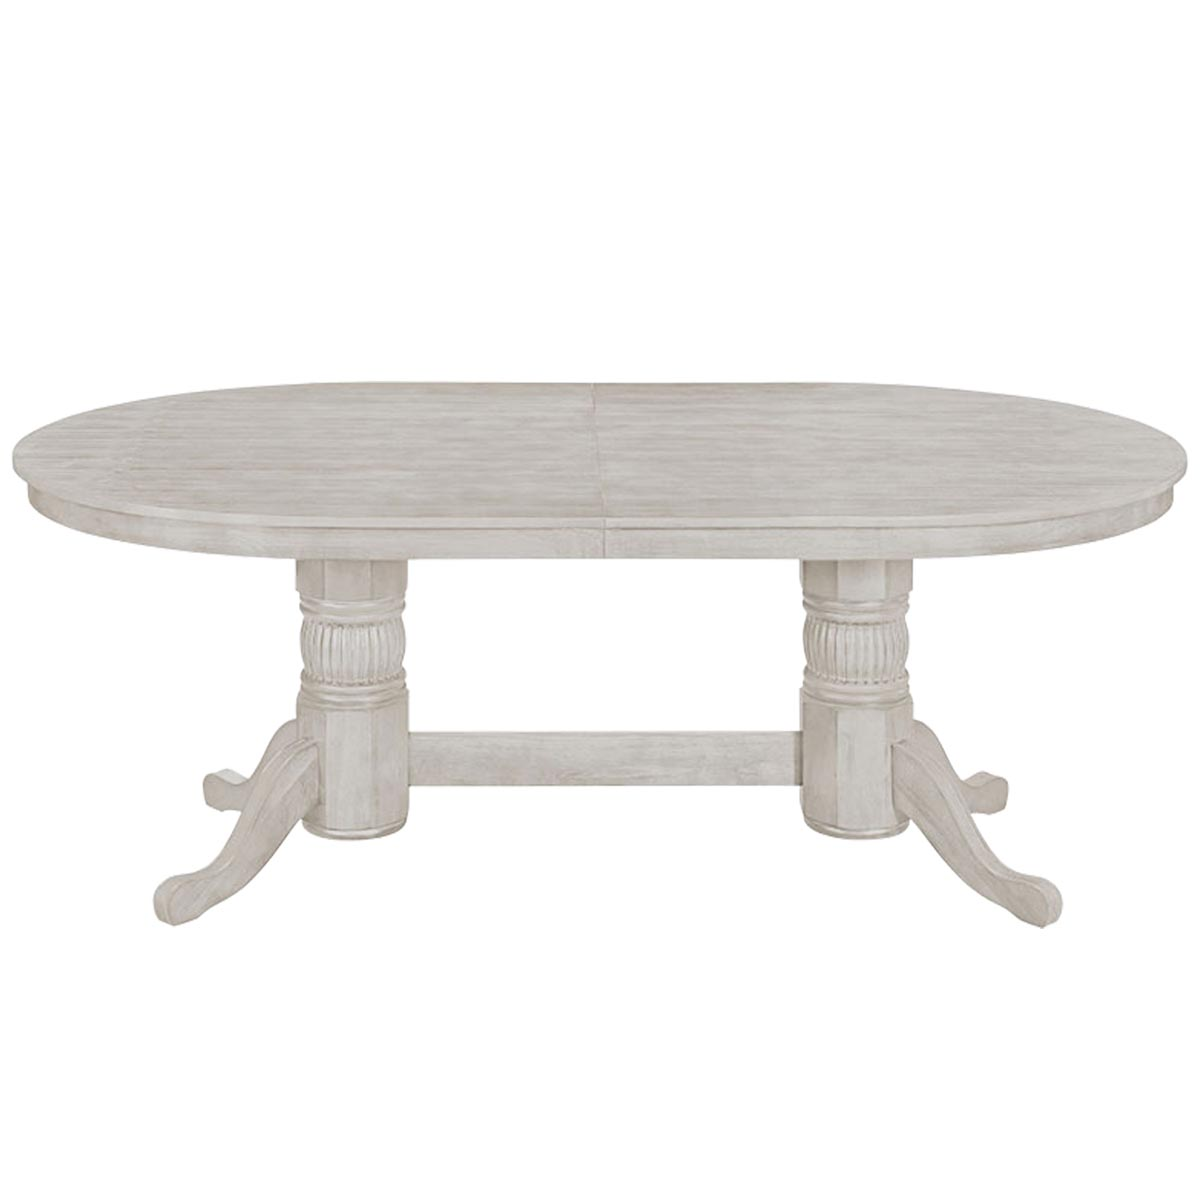 Antique White with Optional Dining Table Top